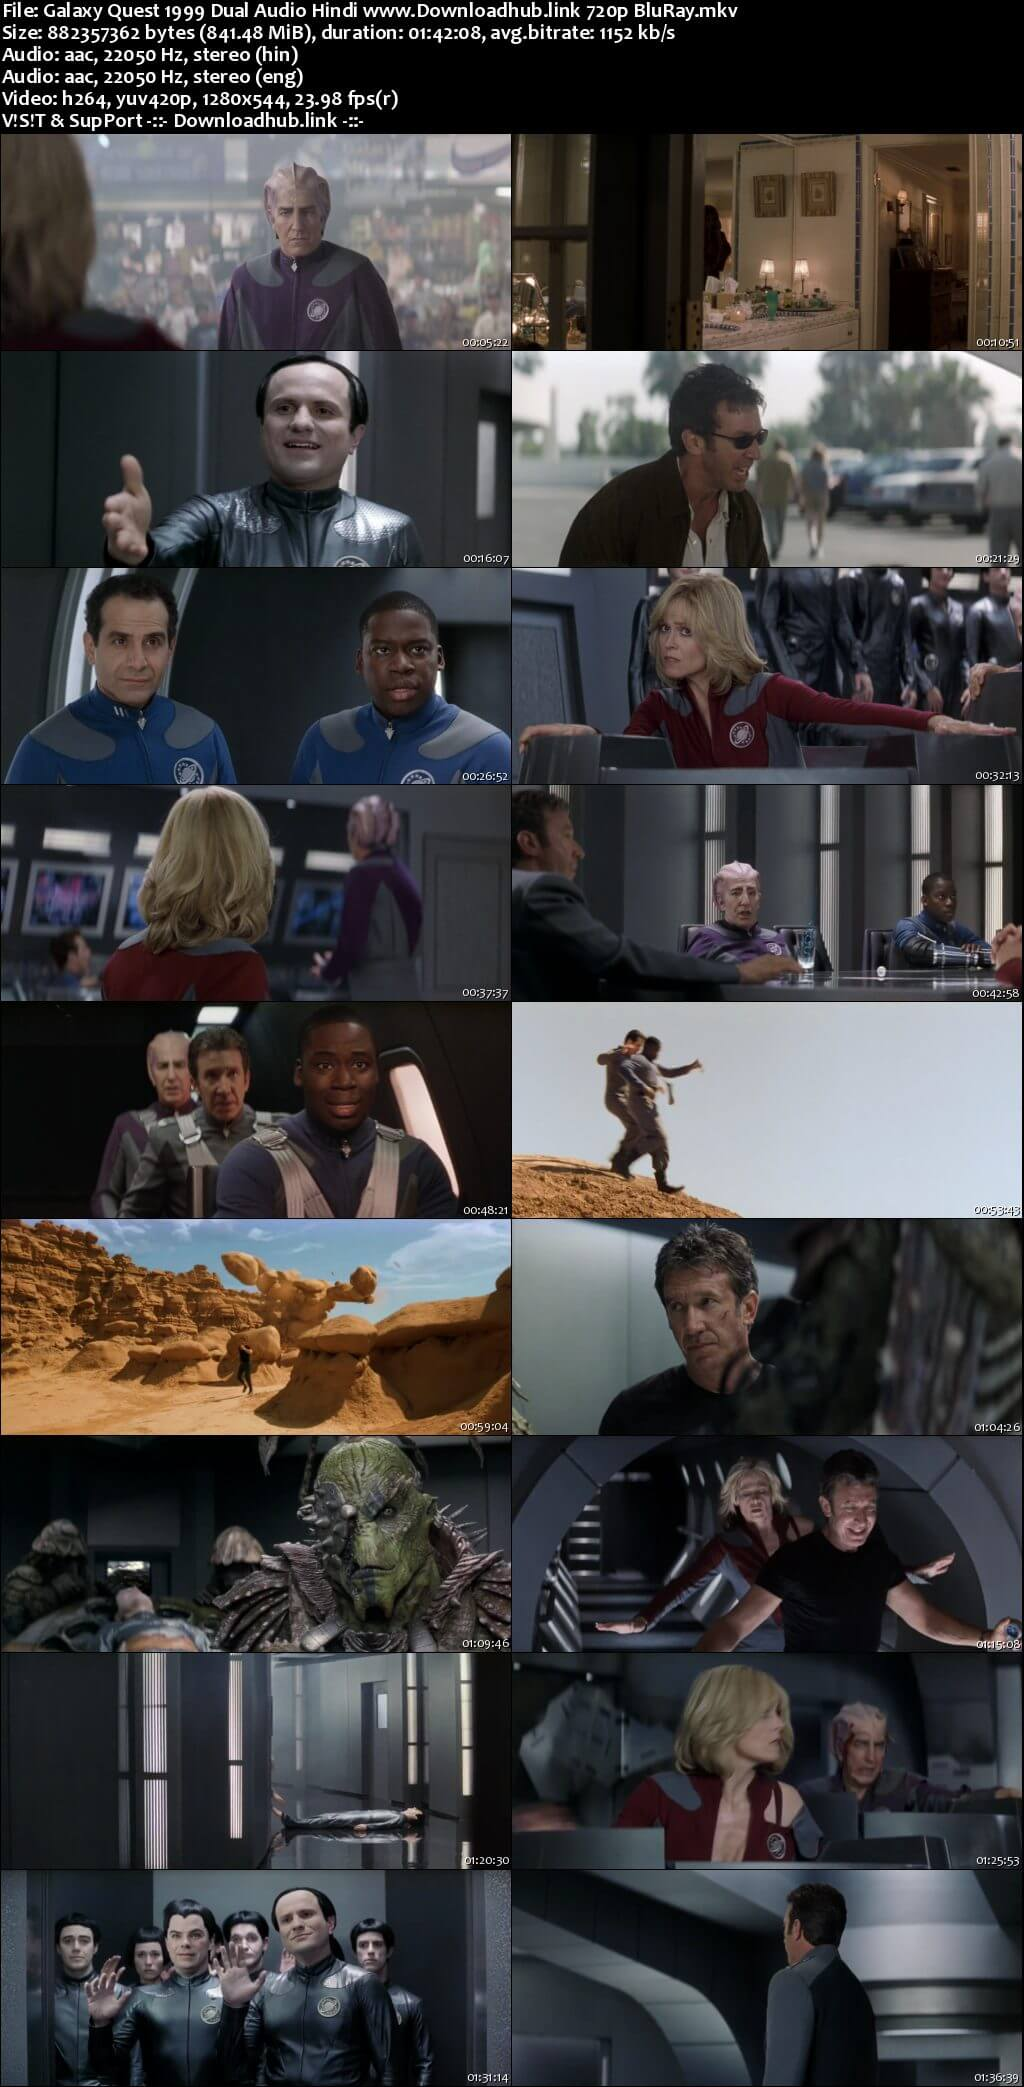 Galaxy Quest 1999 Hindi Dual Audio 720p BluRay ESubs